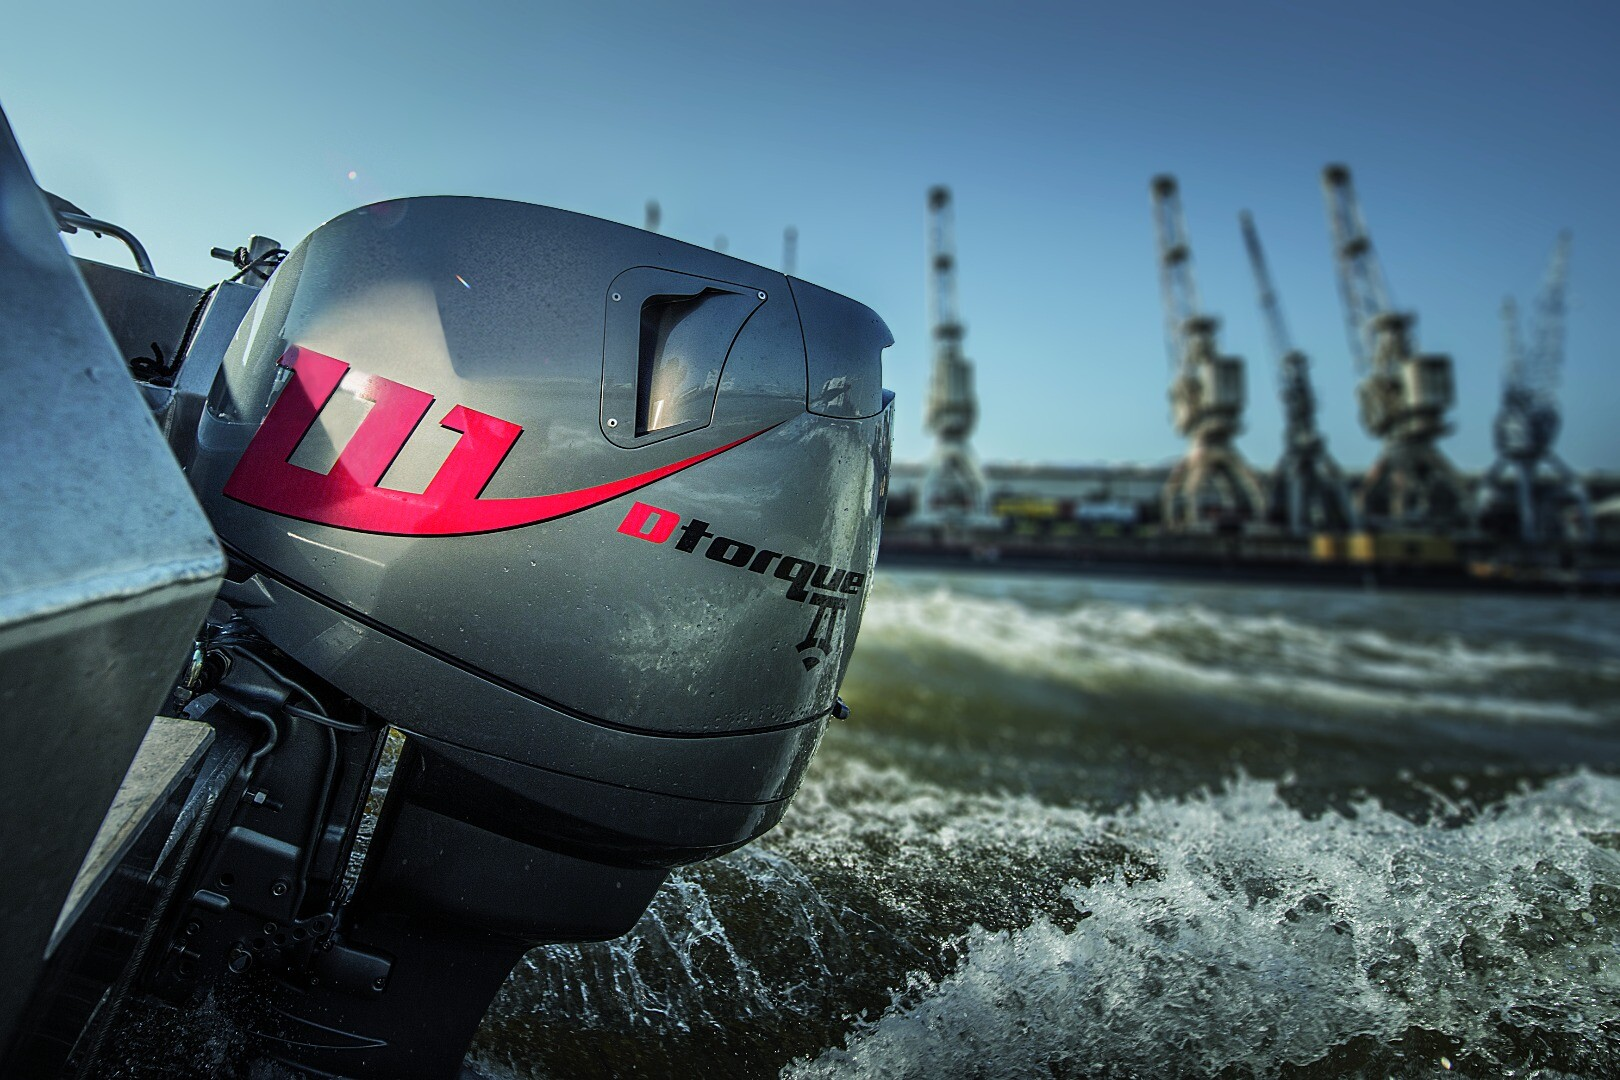 Volume production of the unconventional Yanmar Dtorque 111 twin-cylinder 50 hp turbo-diesel outboard engine has now begun and the benefits over traditional outboard motors seem overwhelming